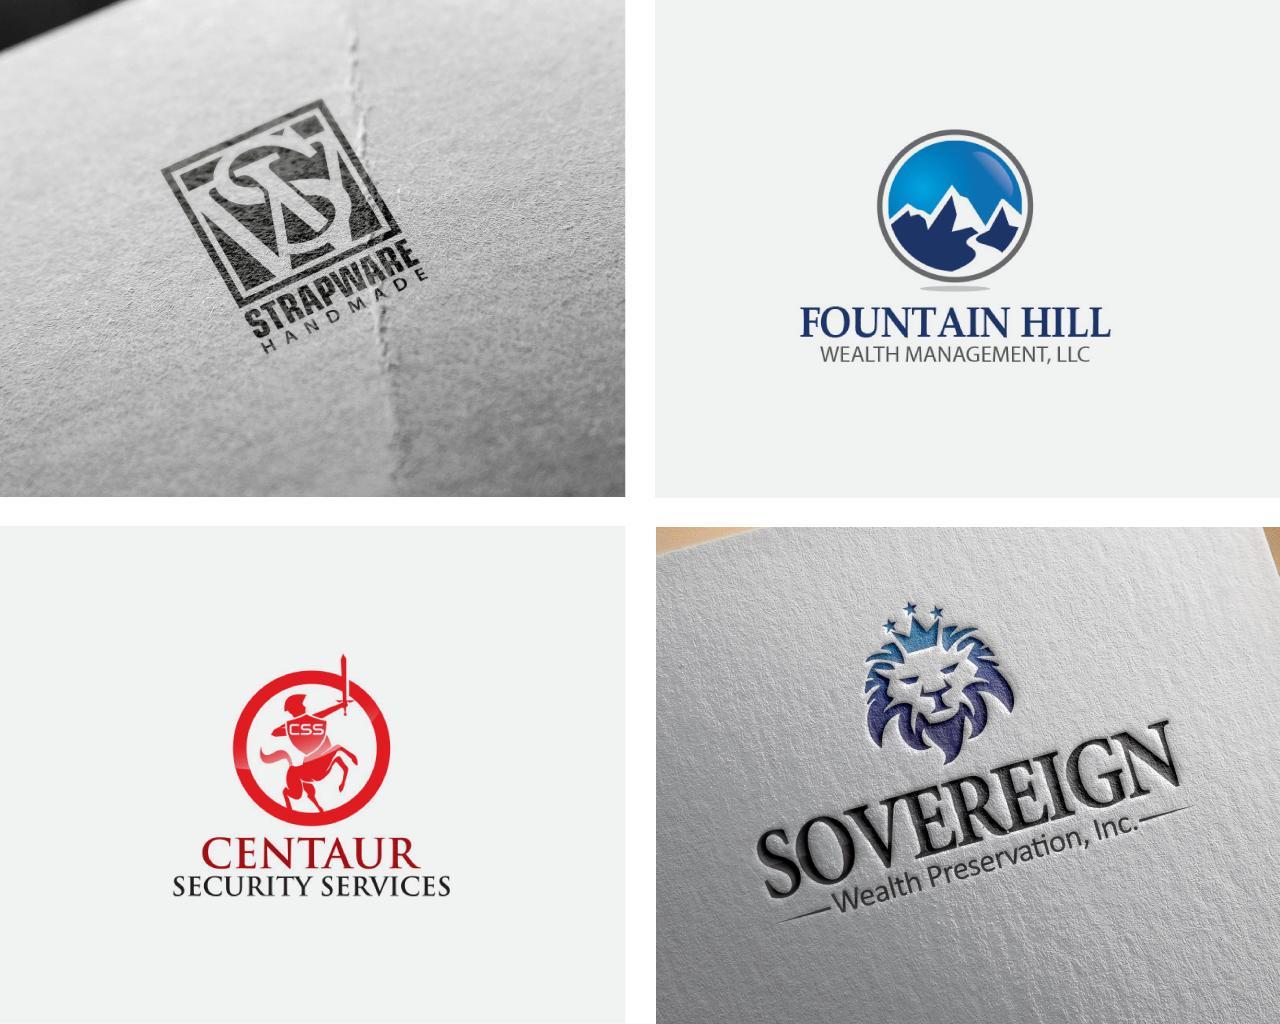 Creative & Professional Logo Design by yogags - 76522